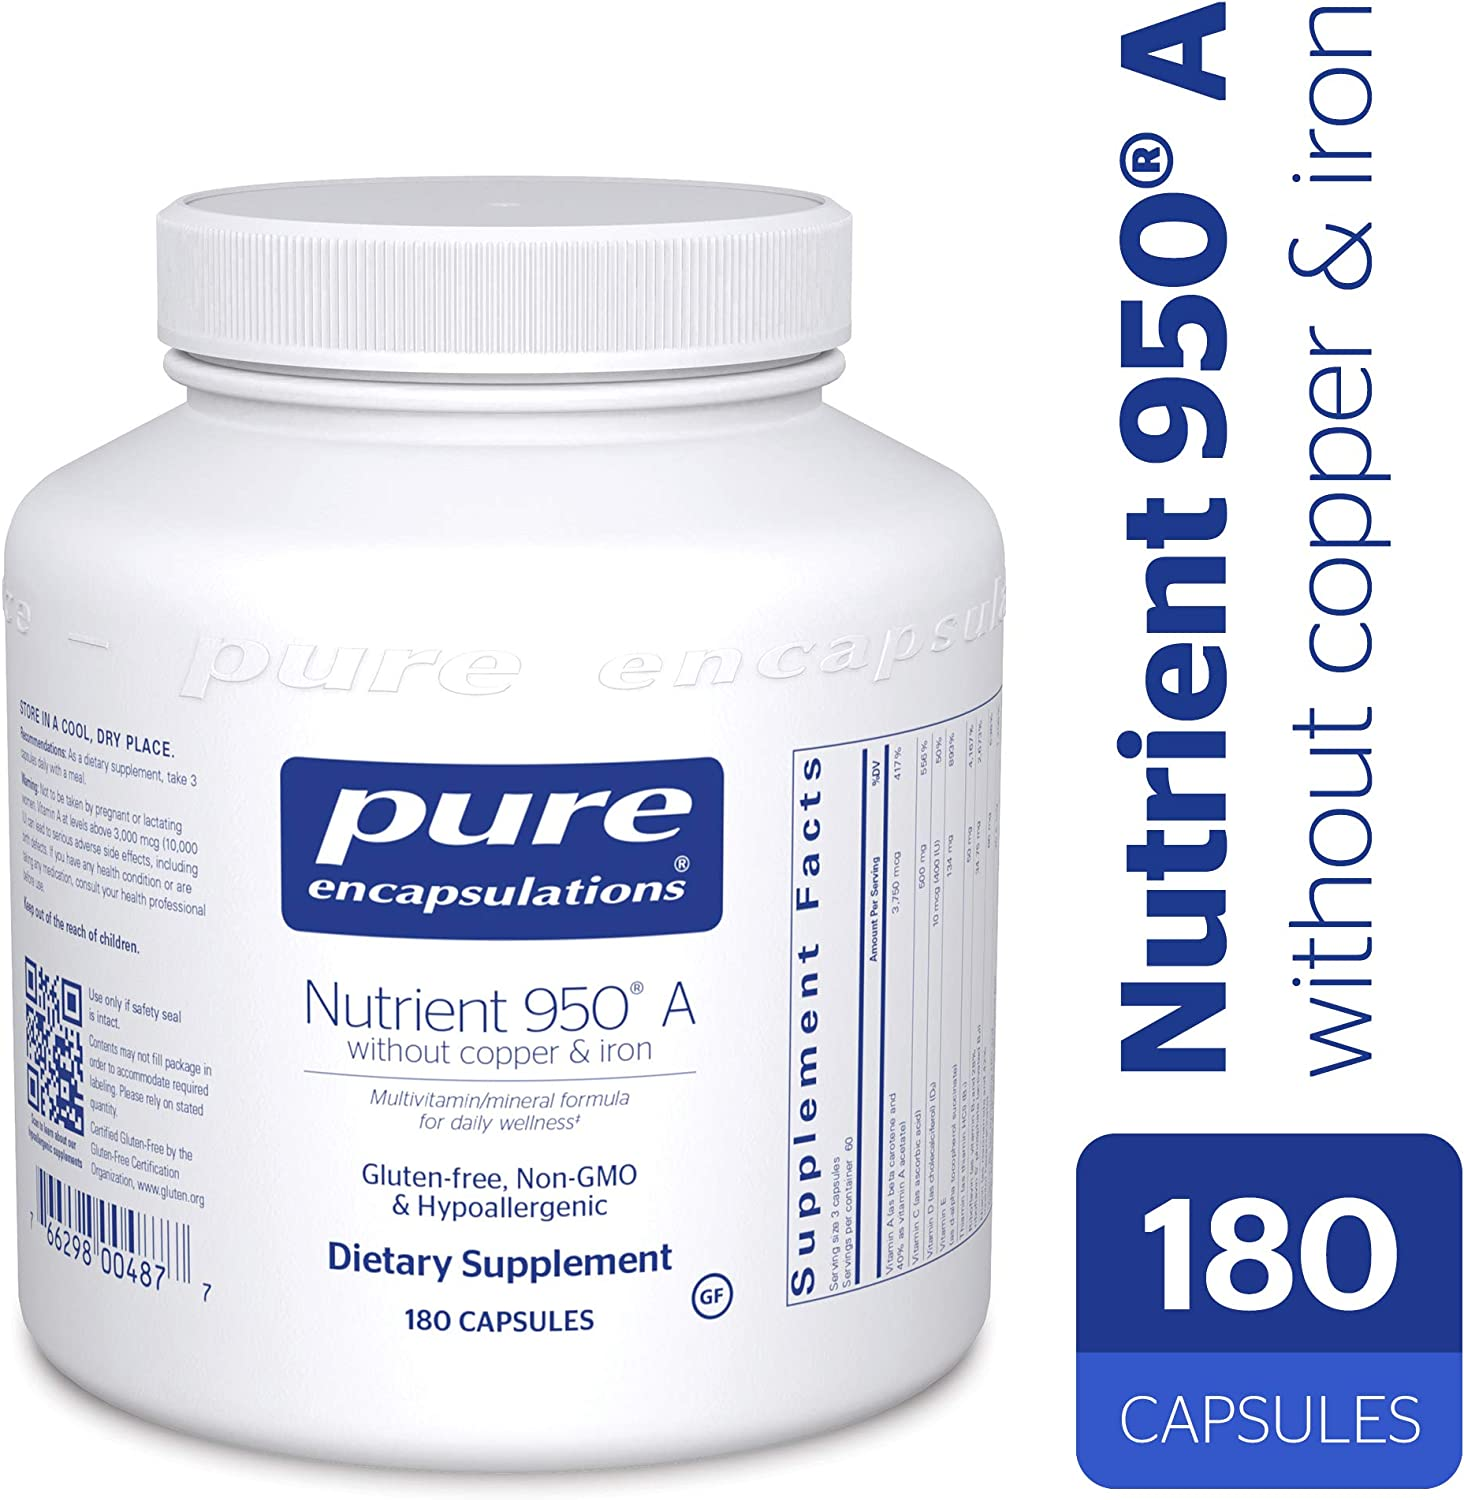 Pure Encapsulations – Nutrient 950 A Without Copper Iron – Hypoallergenic Multi-Vitamin Mineral Formula for Optimal Health* – 180 Capsules